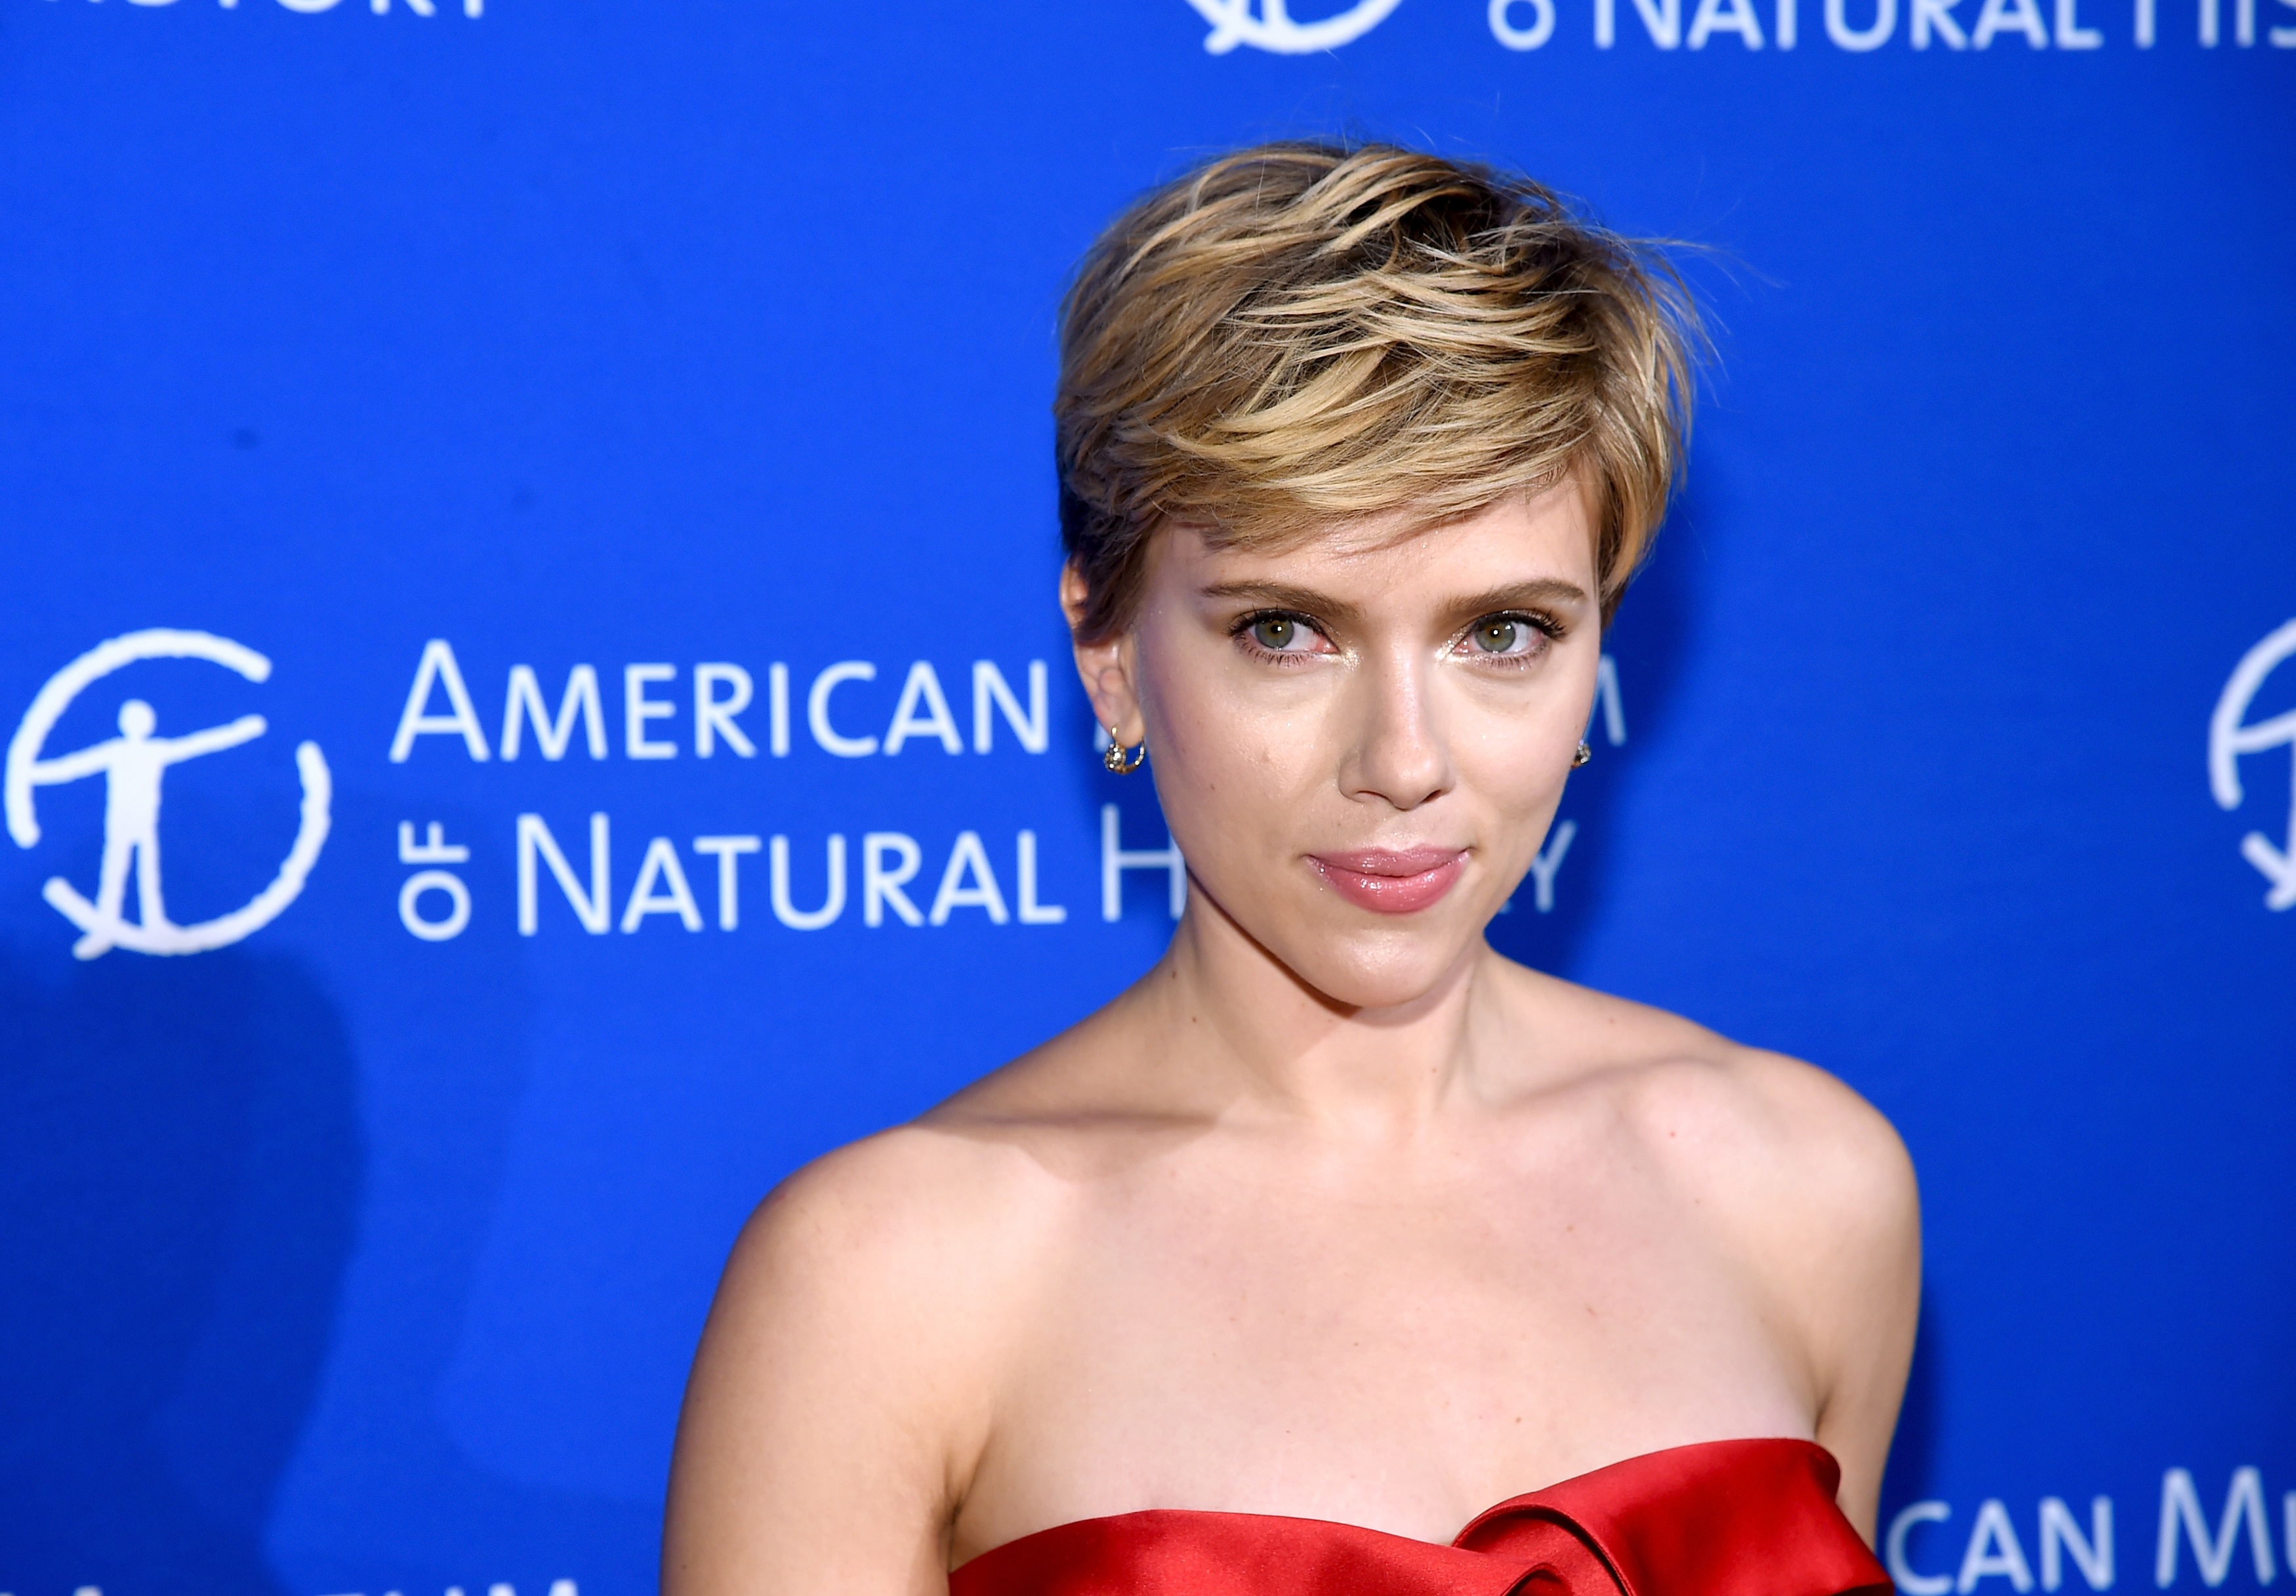 Scarlett Johansson attends the American Museum Of Natural History's 2017 Museum Gala at American Museum of Natural History on November 30, 2017 in New York City.